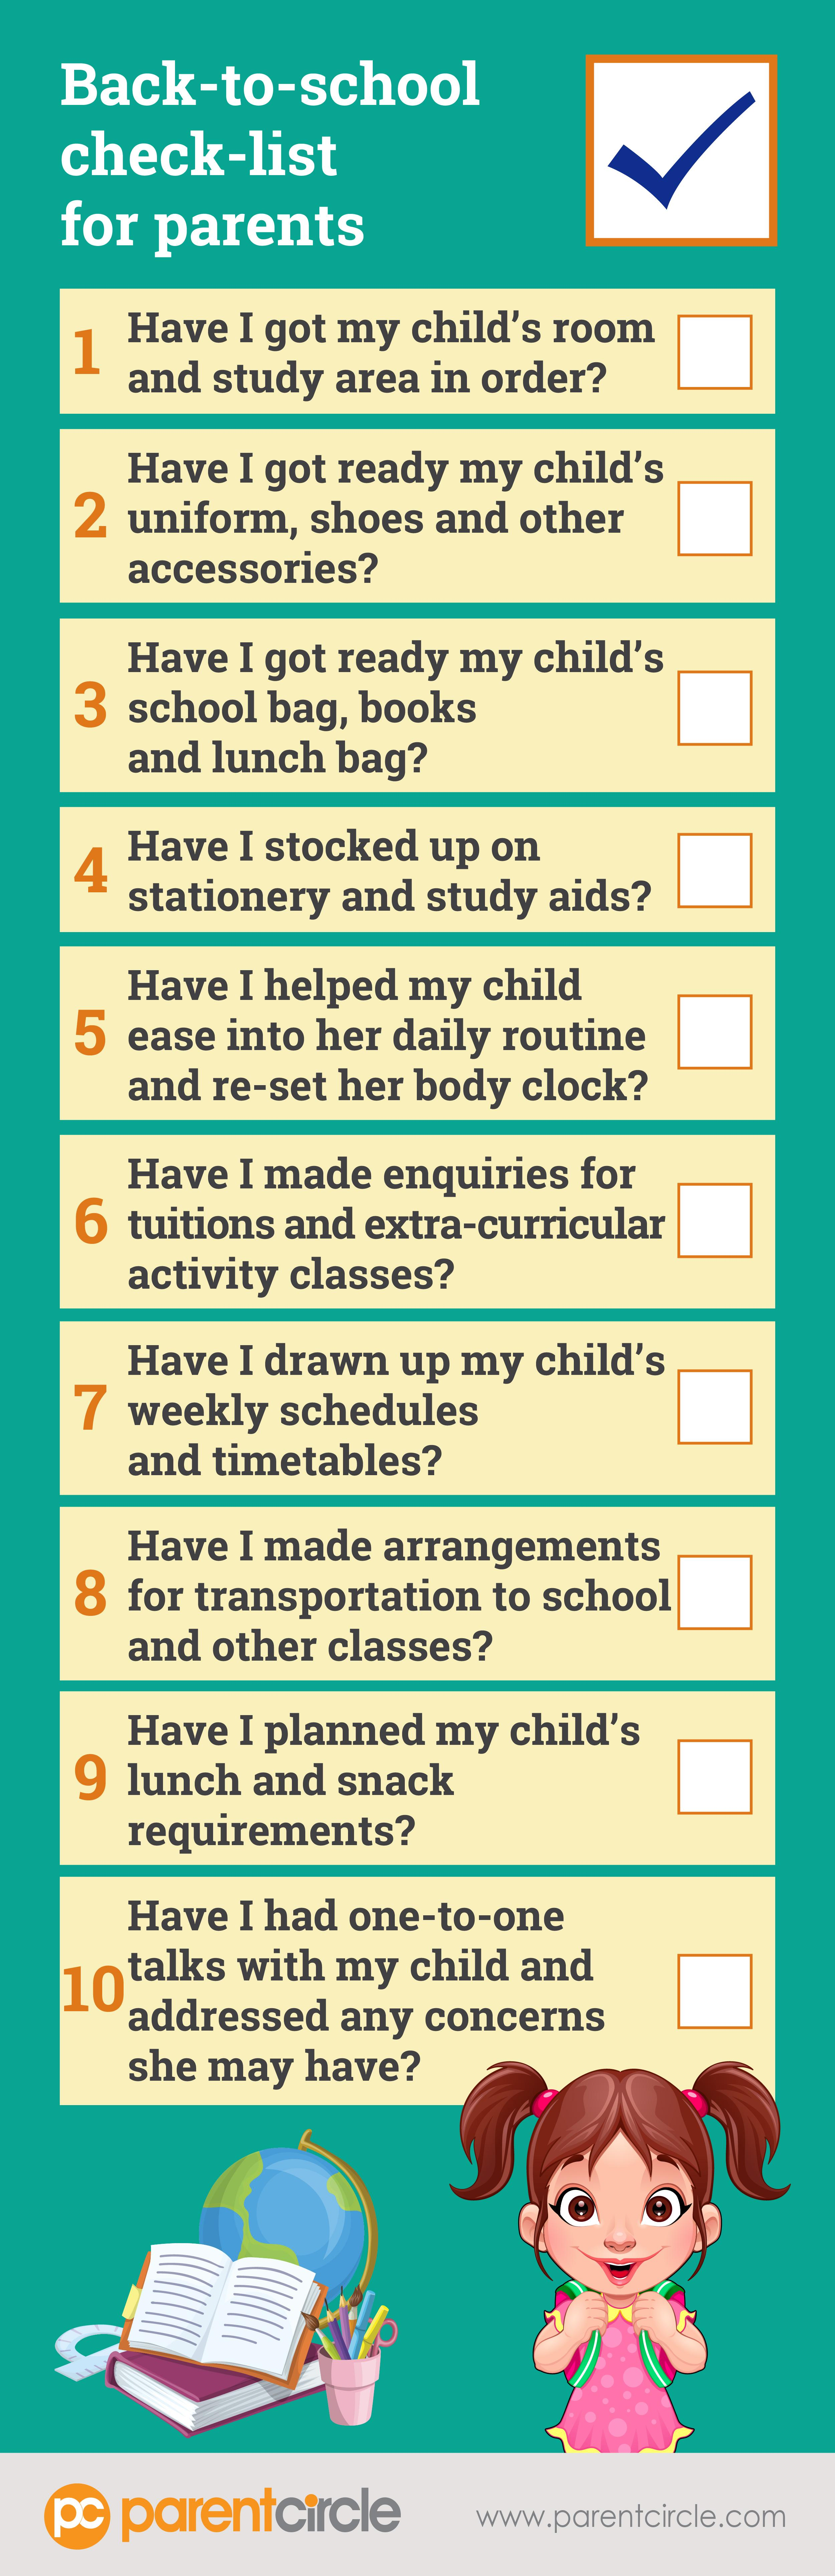 Six Ways To Engage Your Child In 'Back-To-School' Preparation